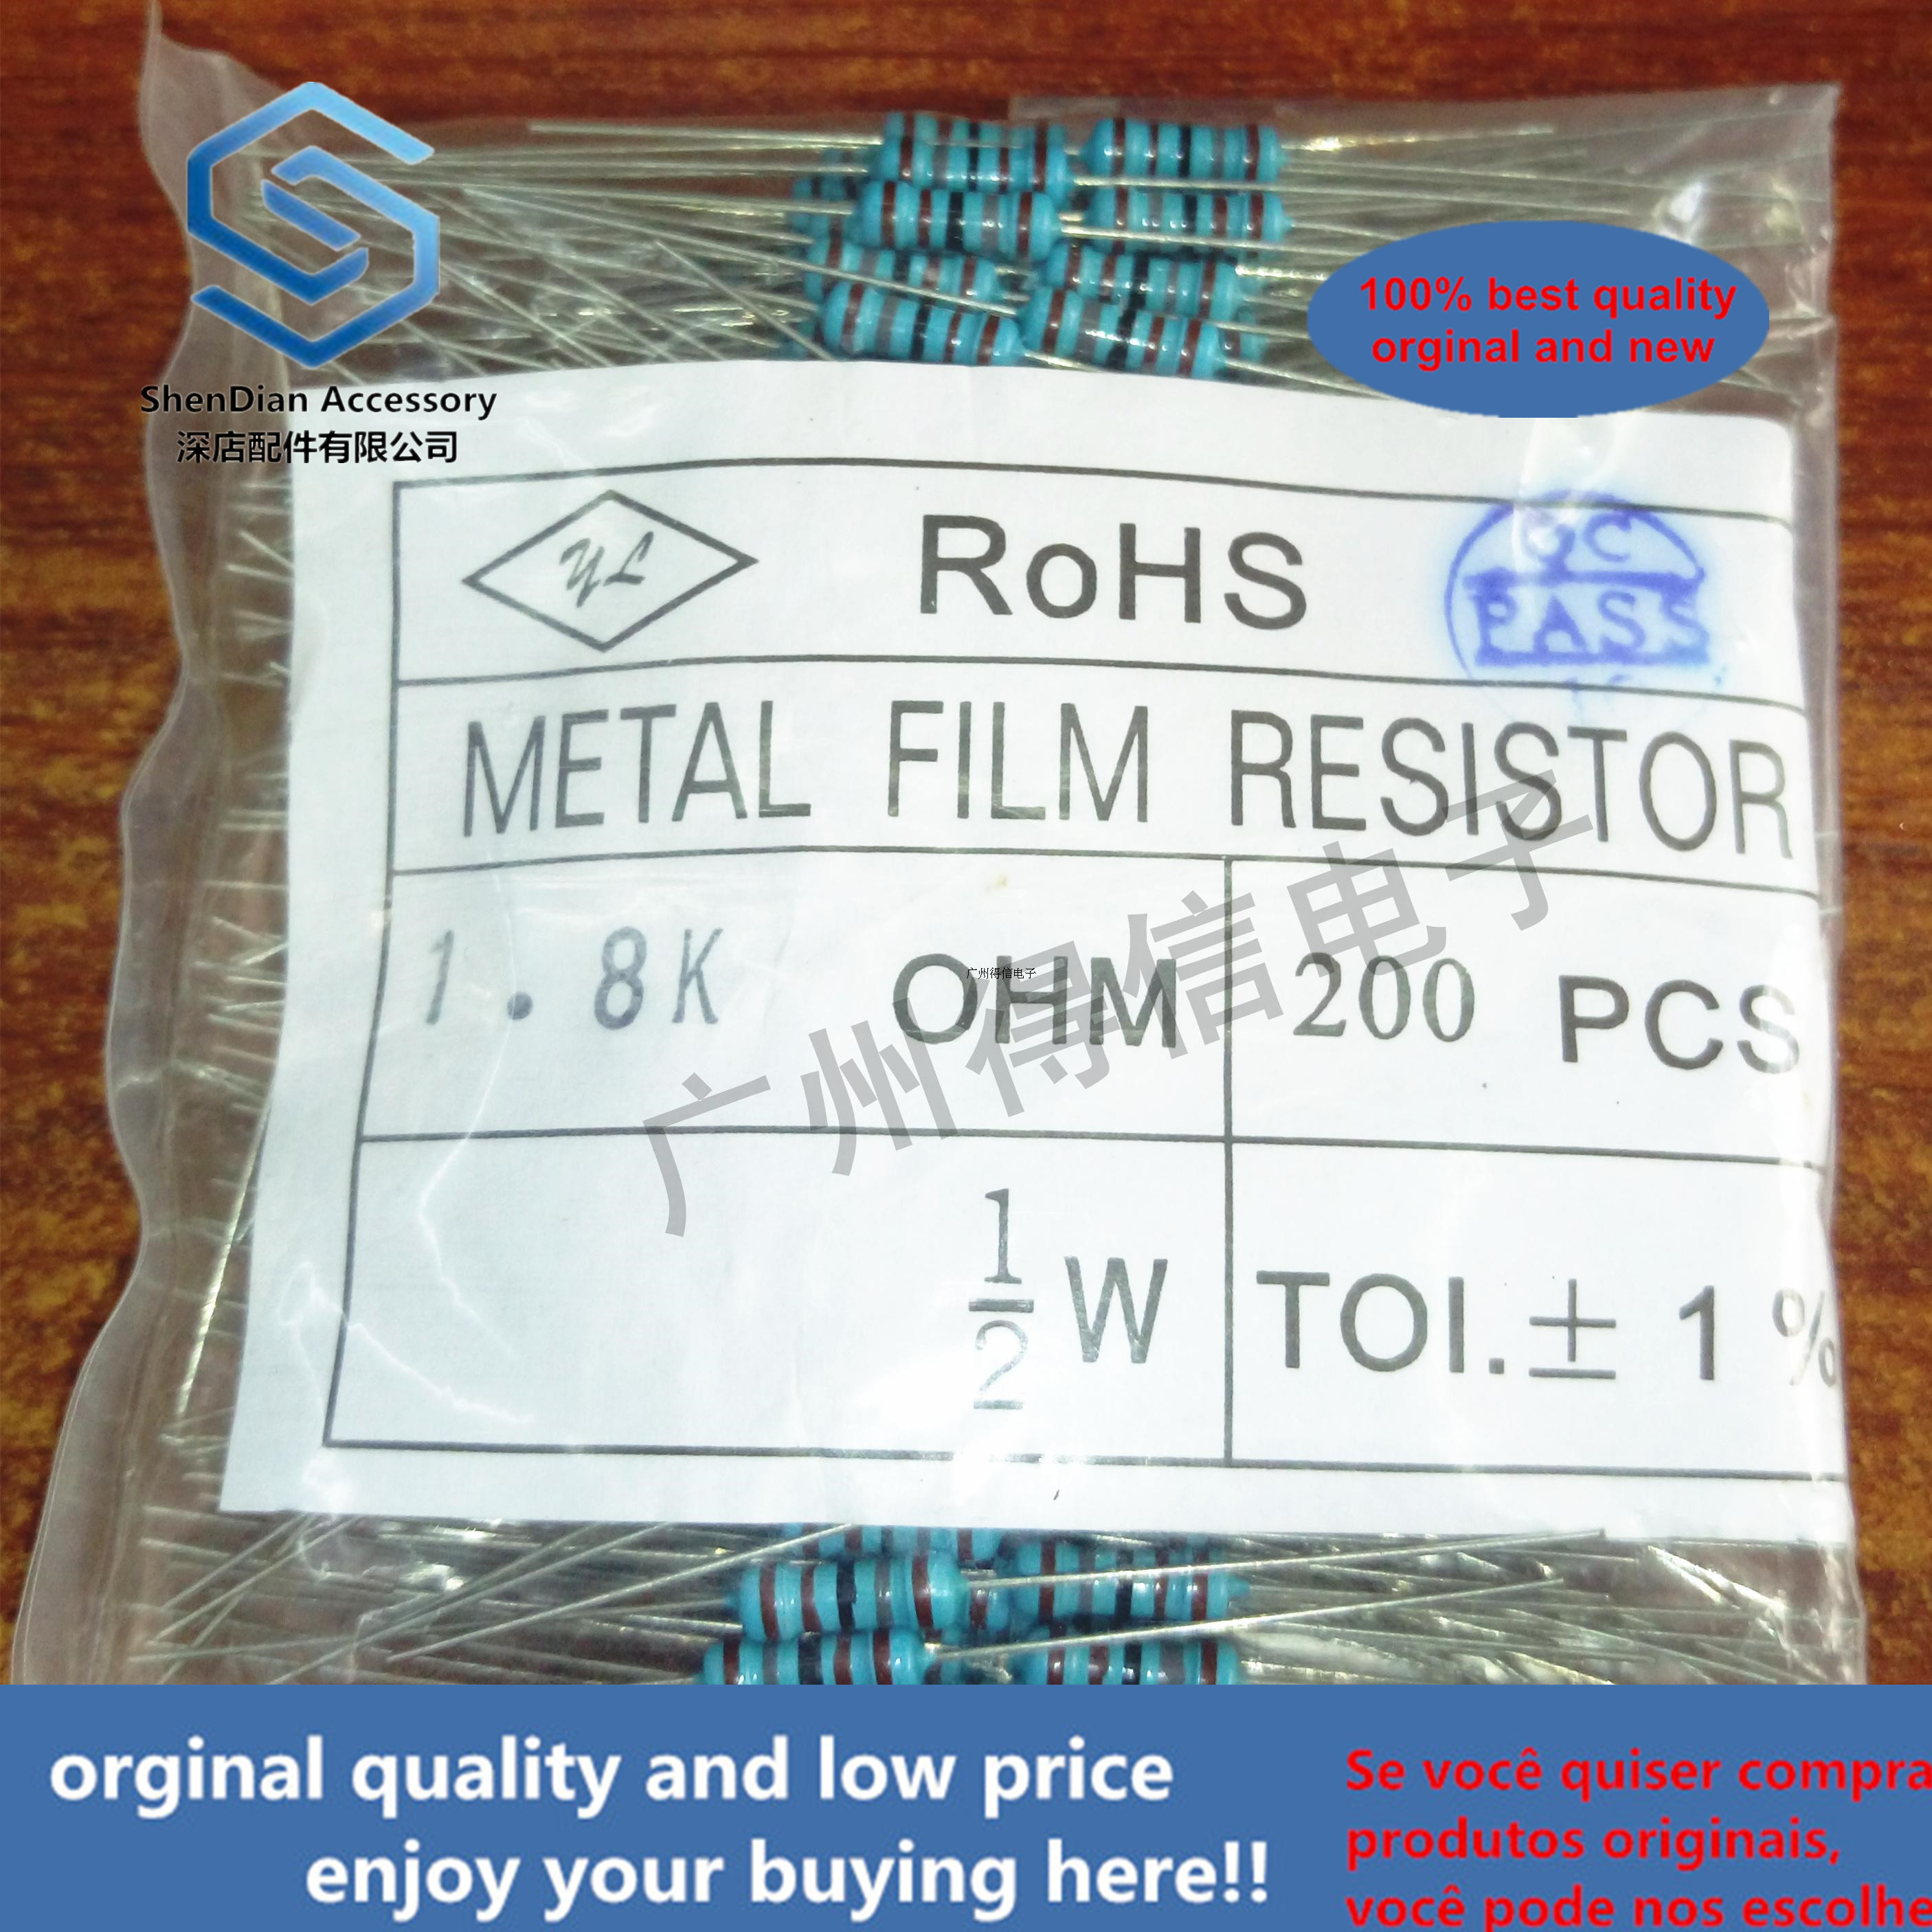 200pcs 1 / 2W 4.7R 4.7 Euro 1% Brand New Metal Film Iron Feet Resistor Bag 200 Pcs Per Pack